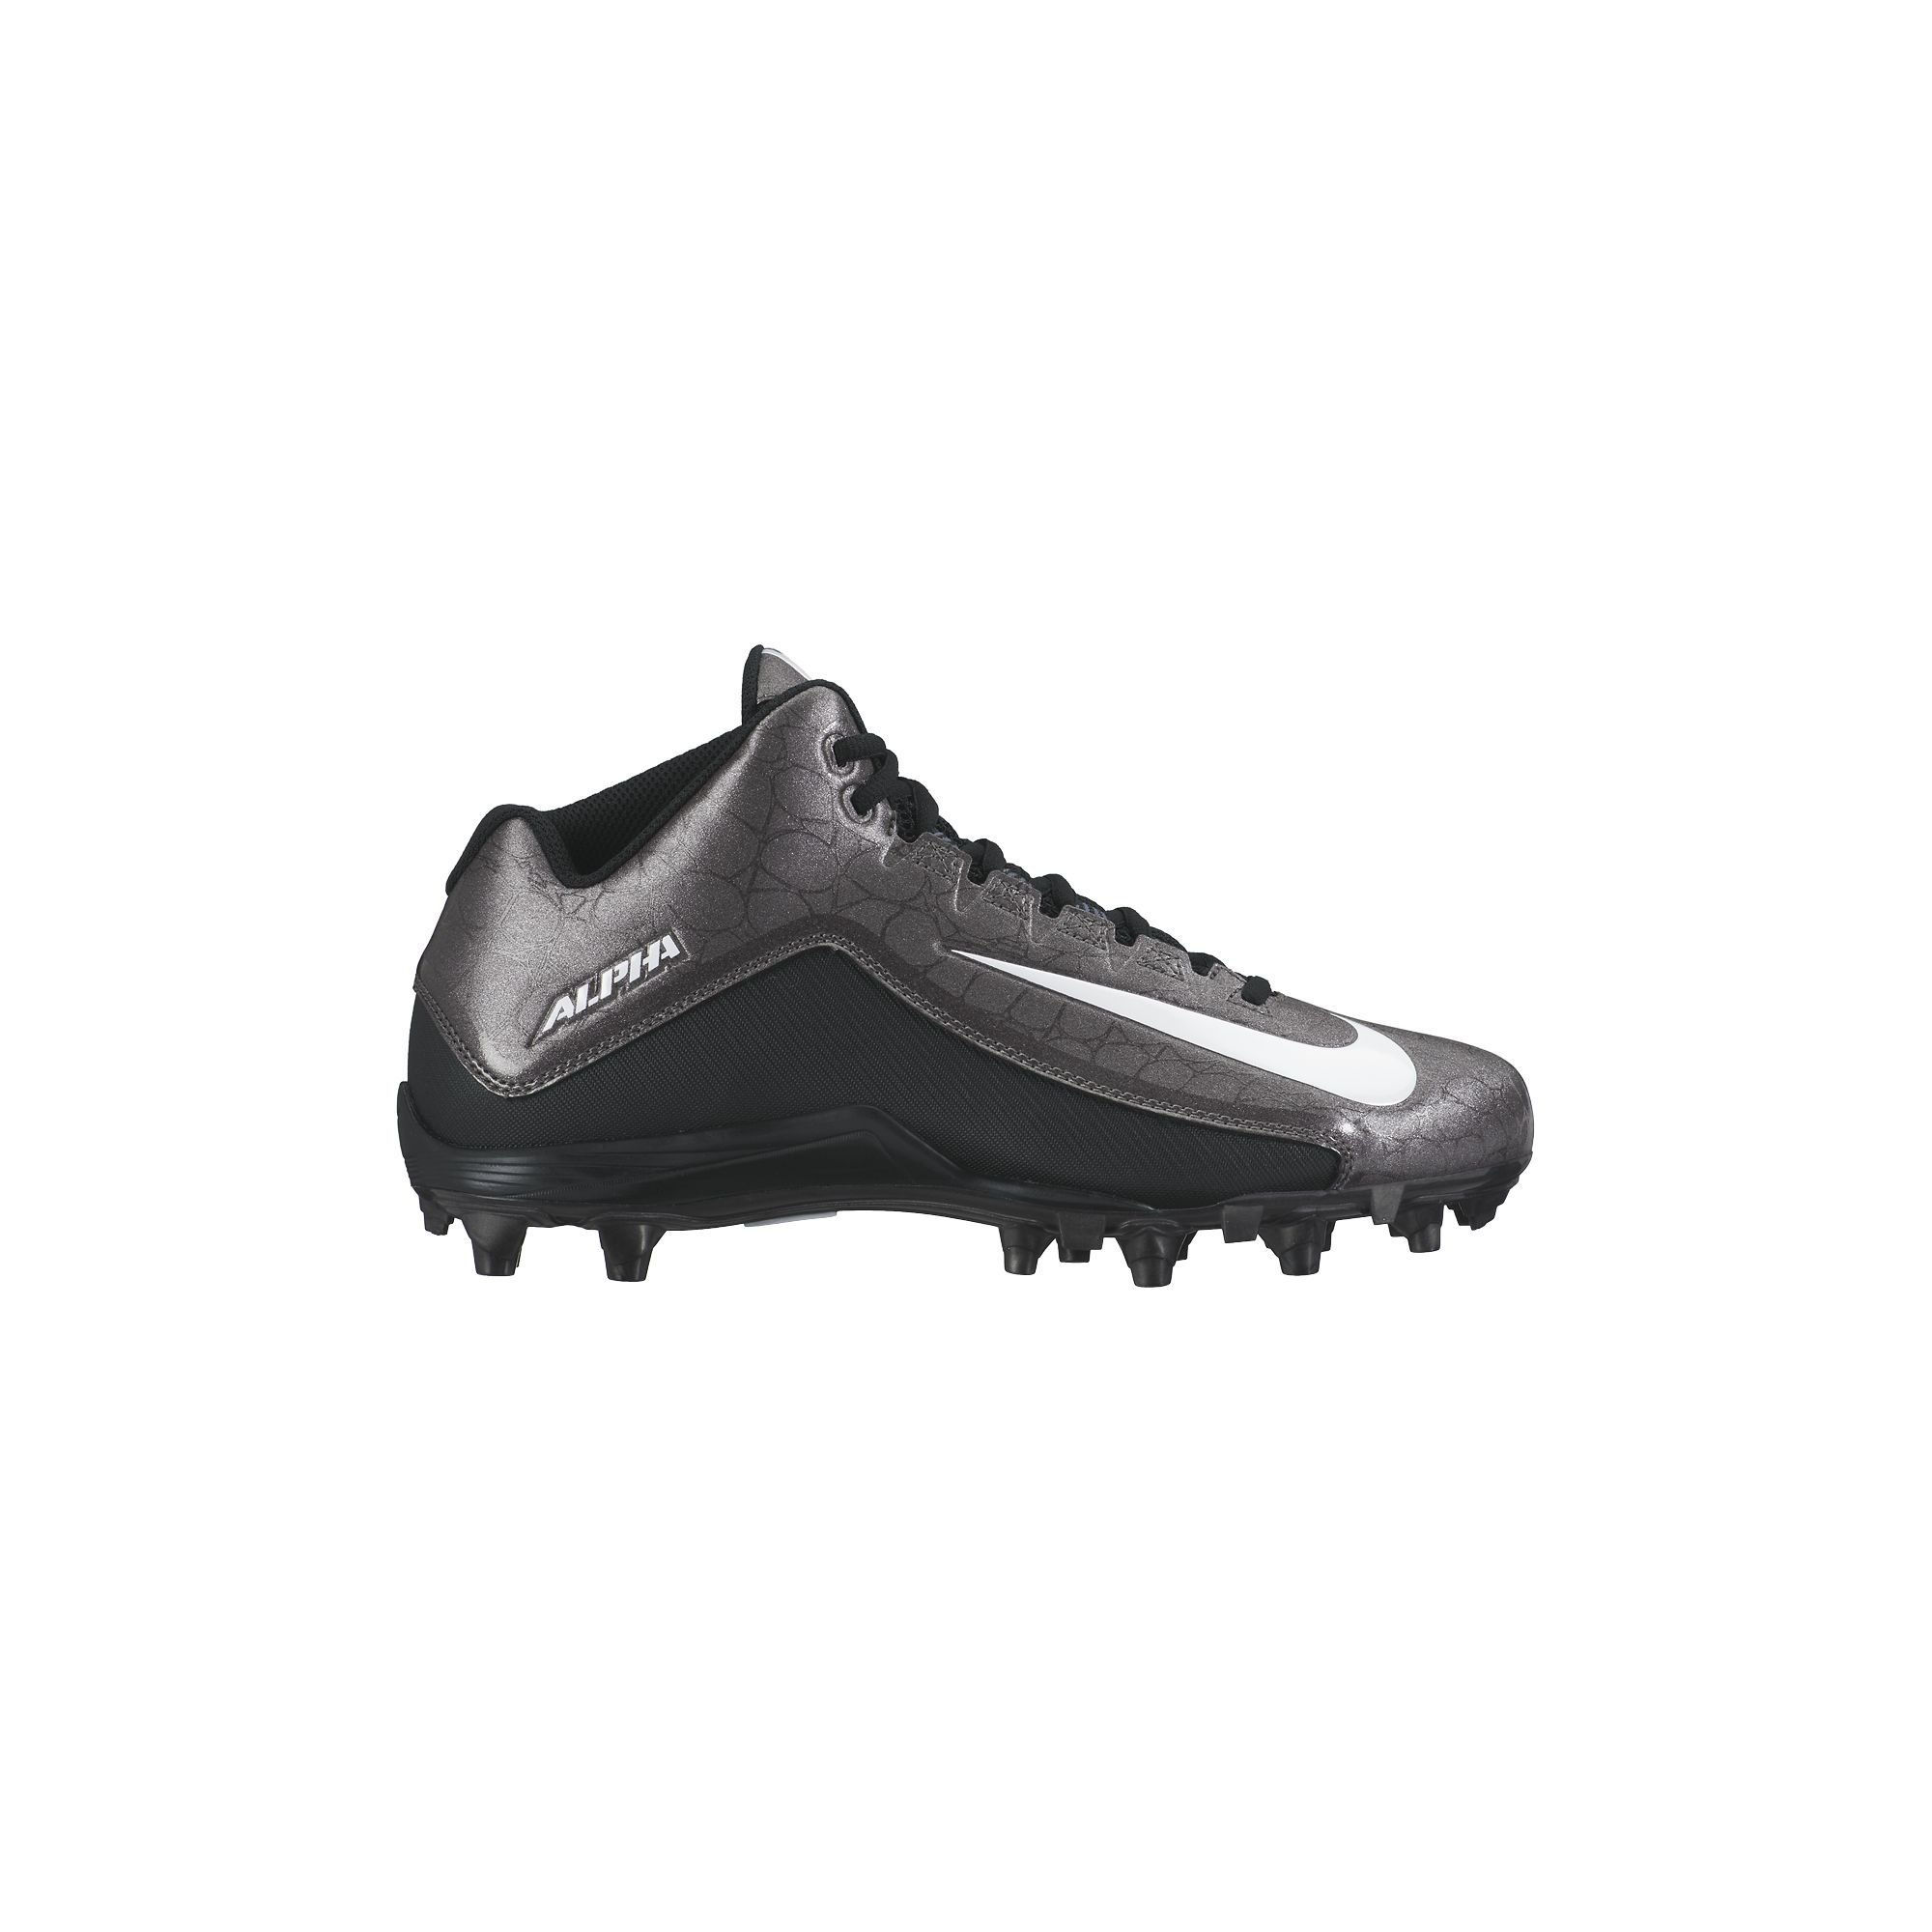 NIKE Men's Alpha Strike 2 Three-Quarter Football Cleat Black/Dark Grey/White Size 8 M US by NIKE